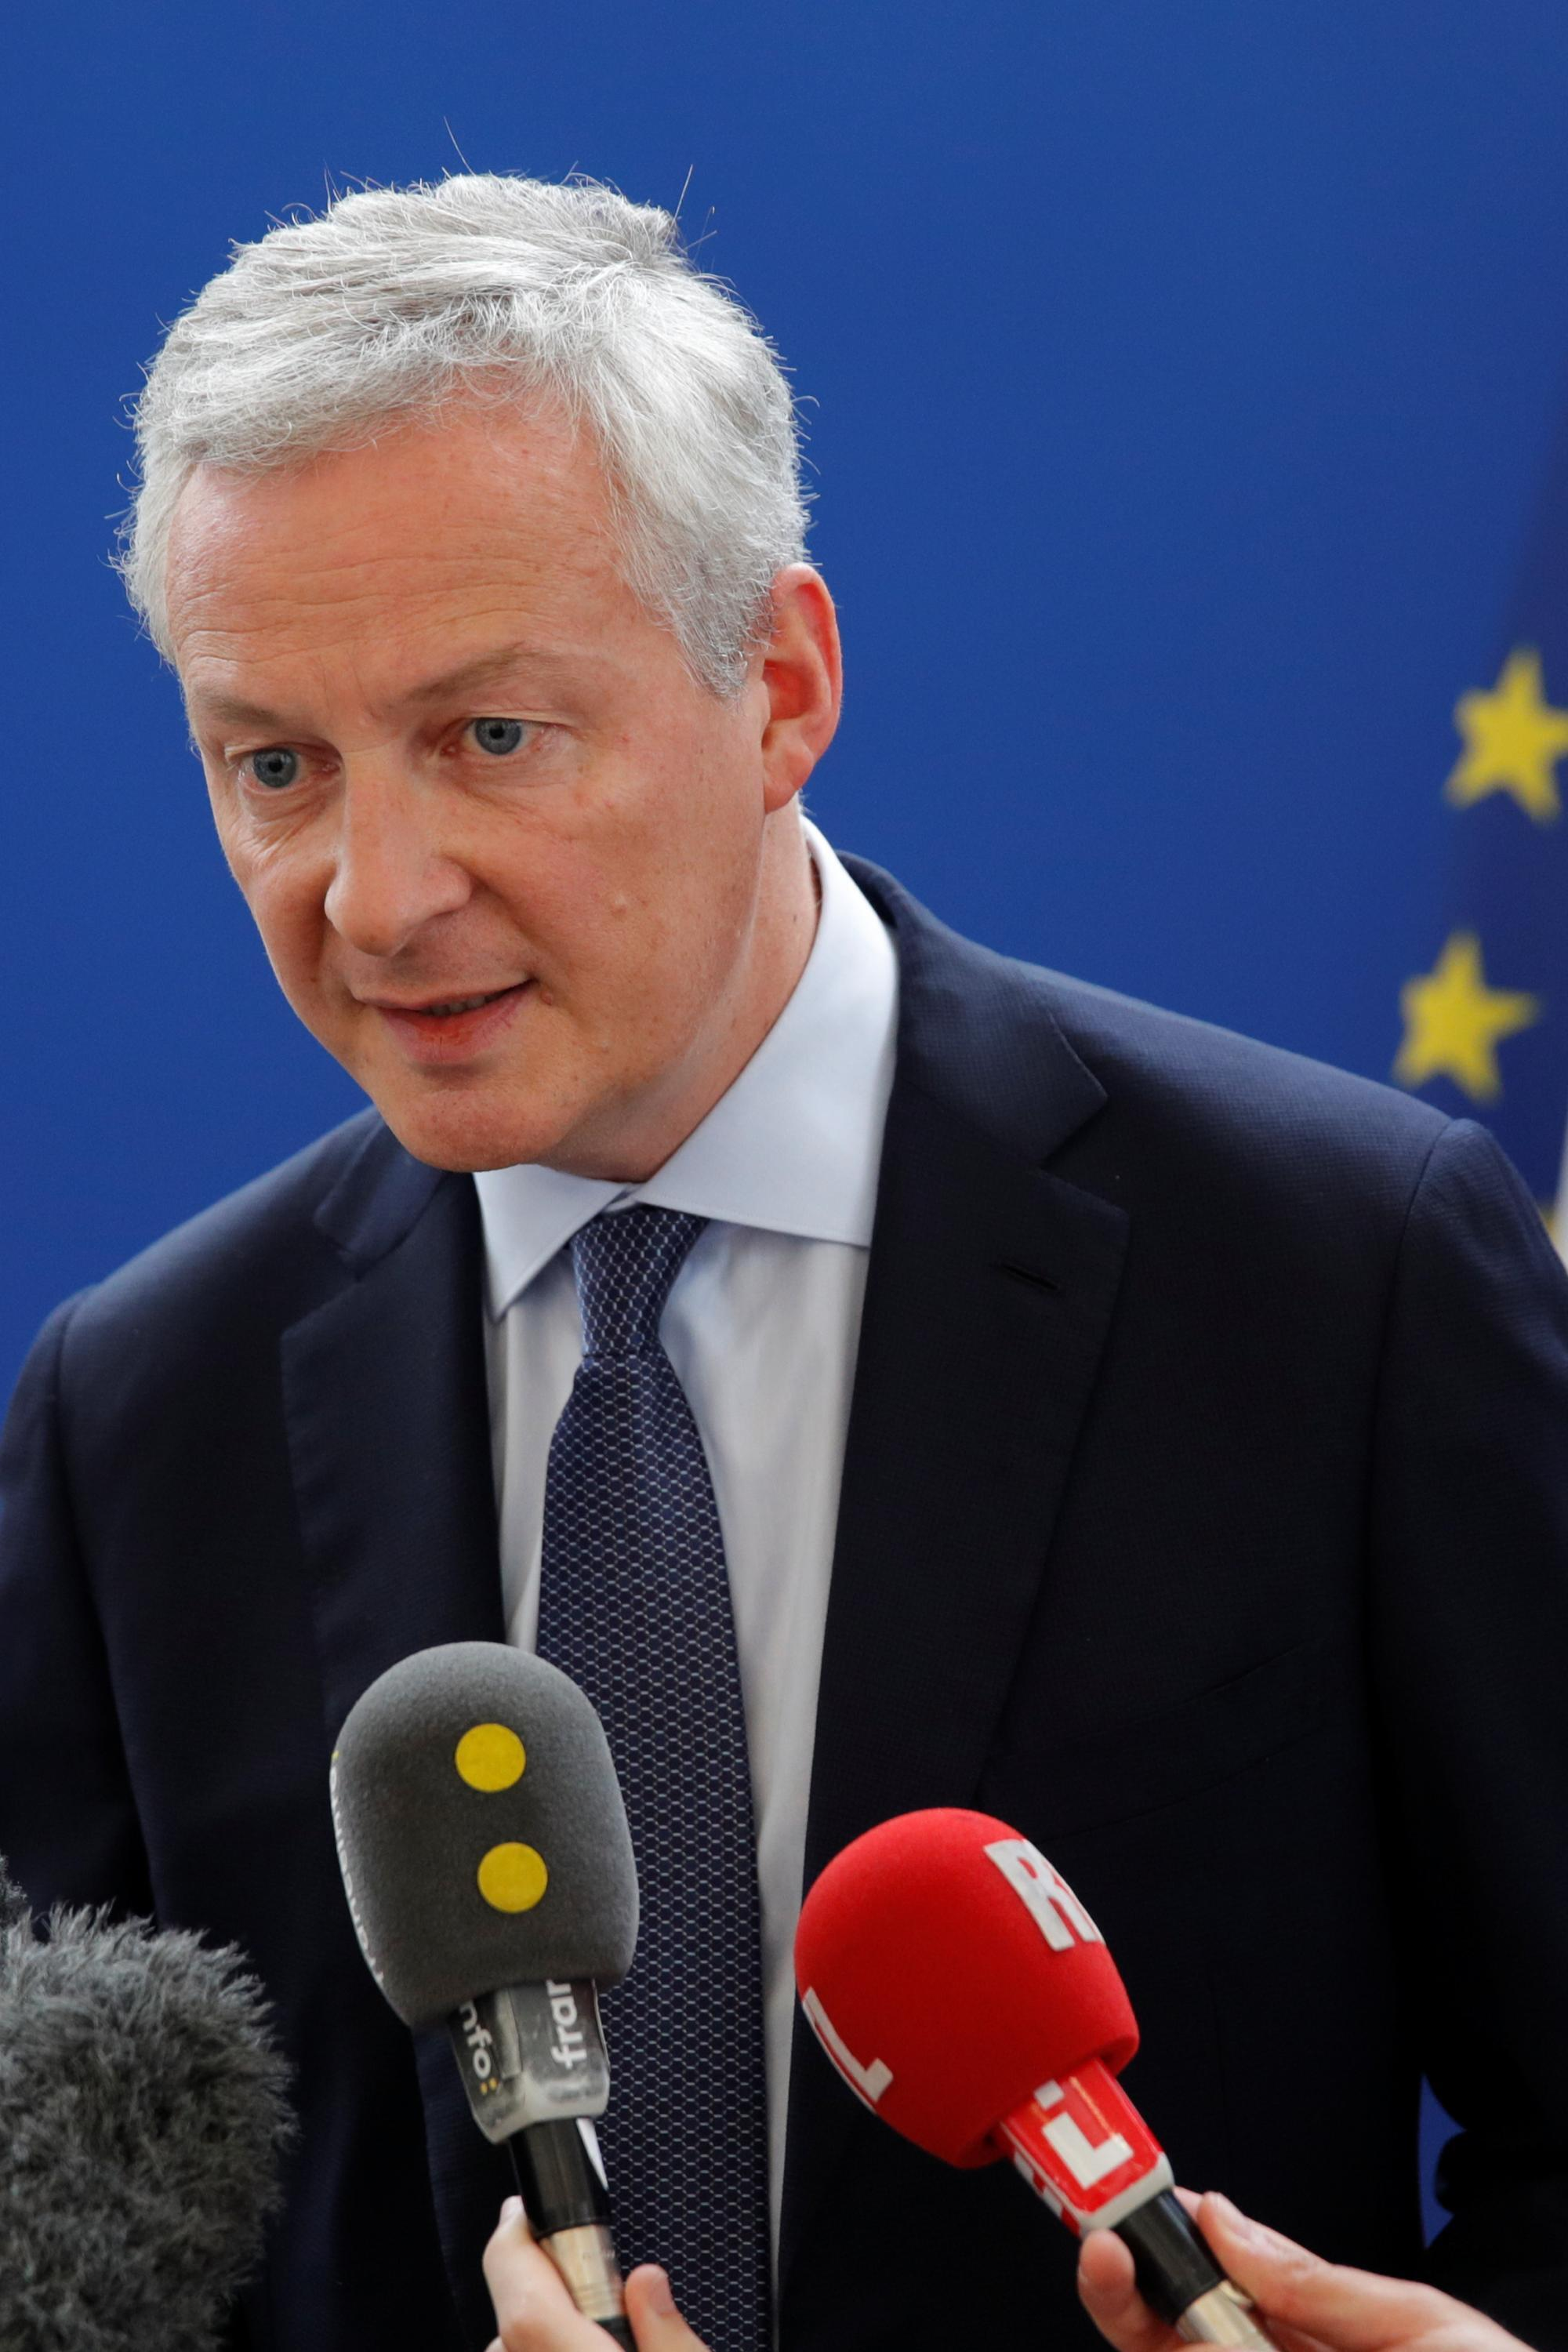 French finance minister Bruno Le Maire says he does not want a trade war with the US over the plan to tax the big American tech firms.